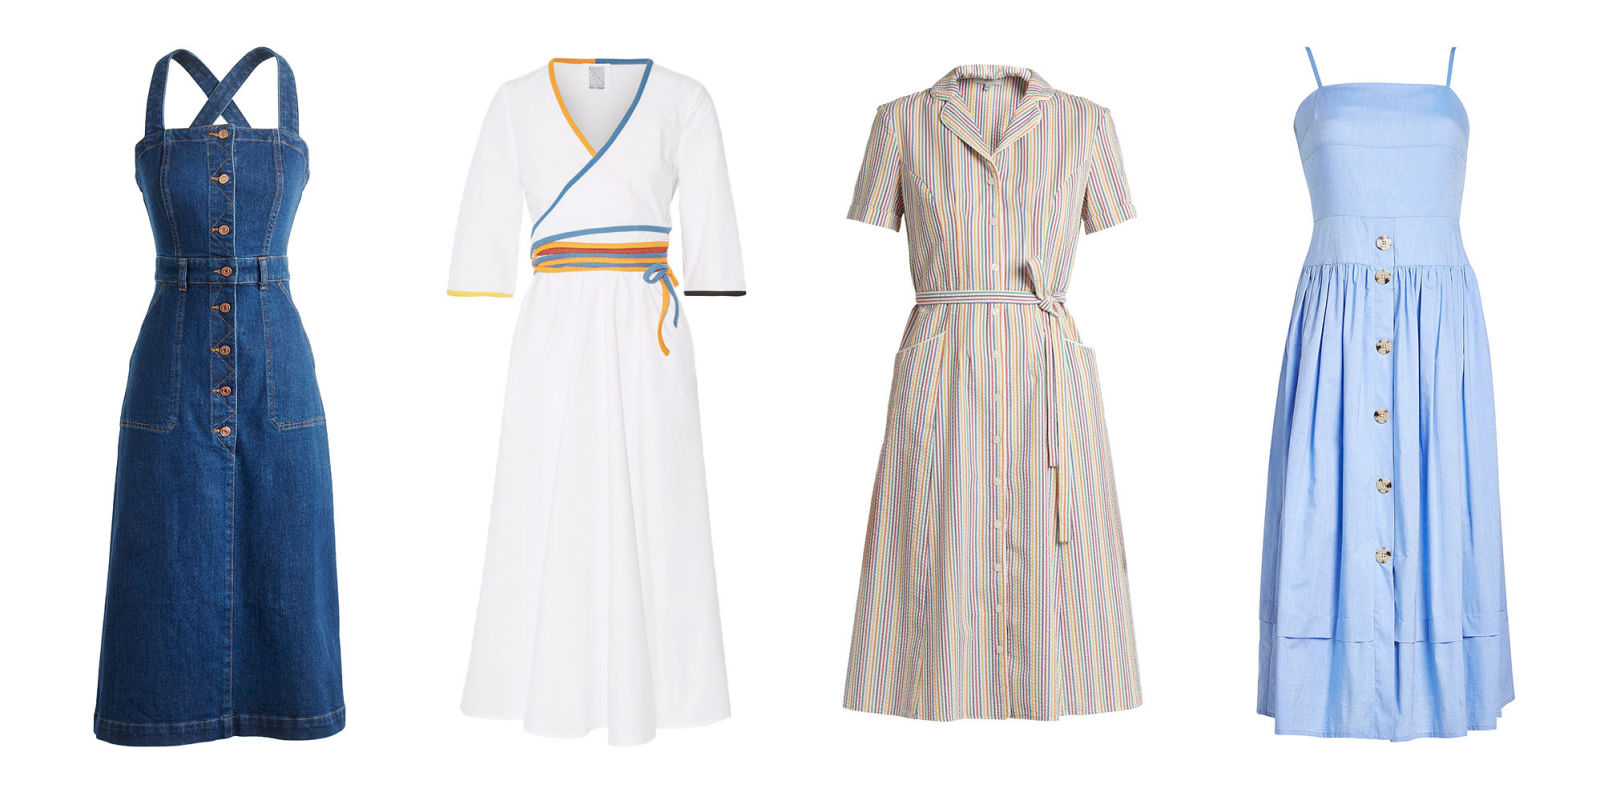 12 Cute Summer Dresses For